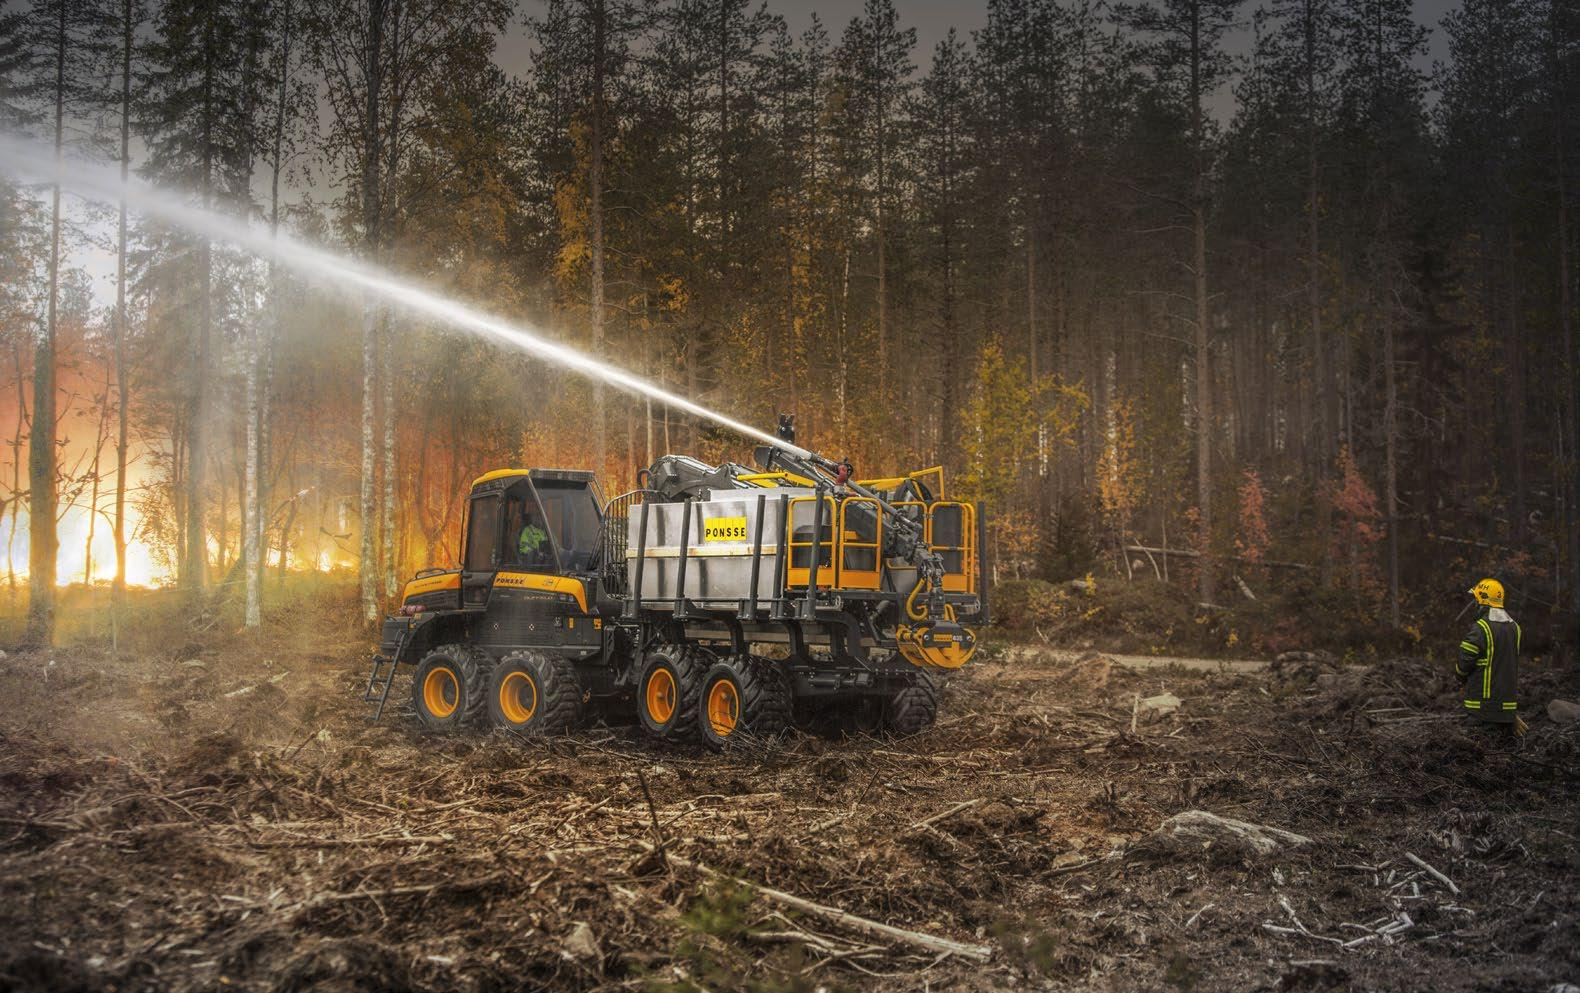 Page 32 of Ponsse introduces fire fighting equipment for forwarders with a 47-metre reach in rugged terrain